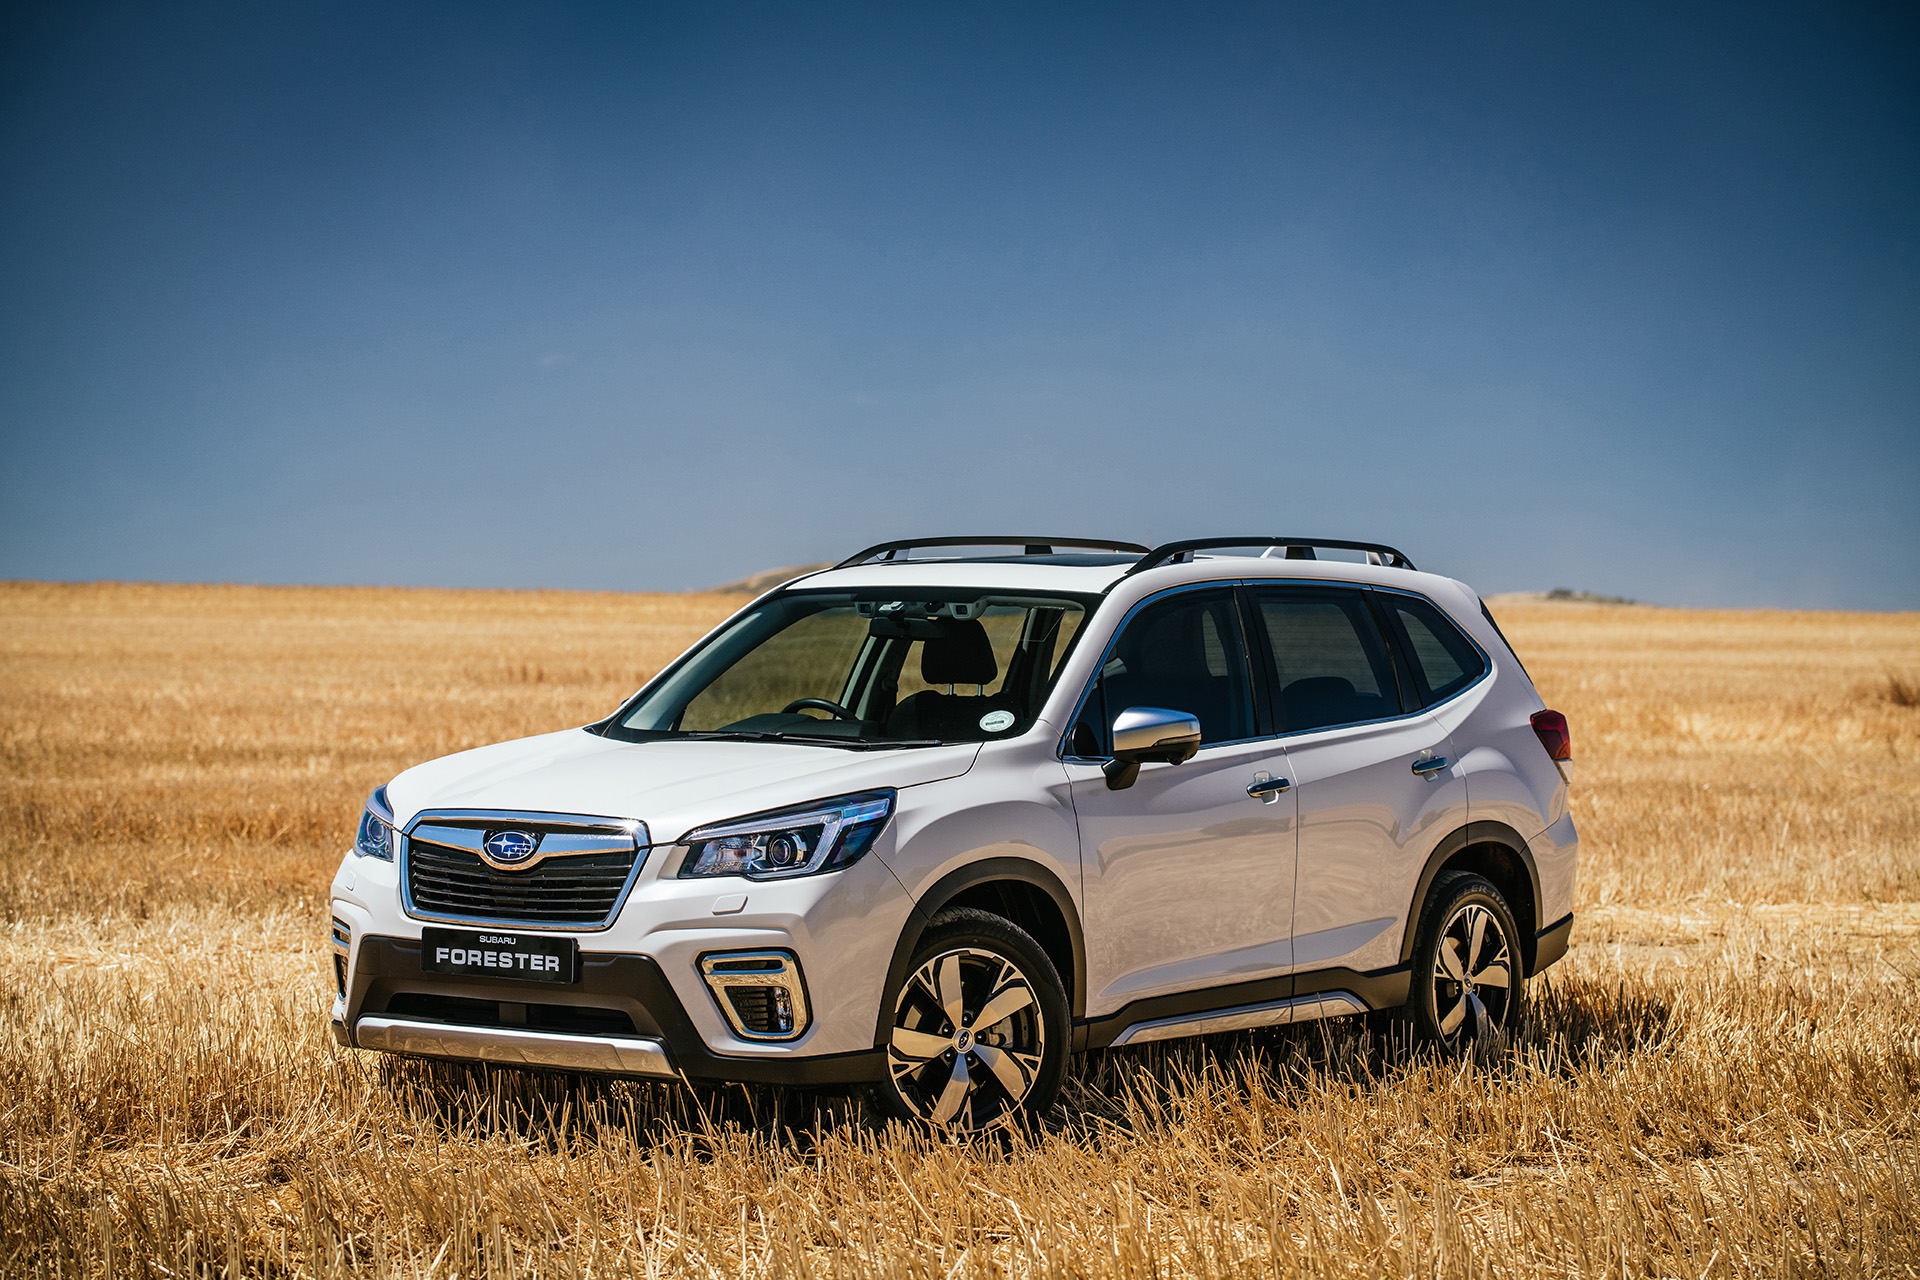 New Subaru Forester 2018 Is Here Next Week